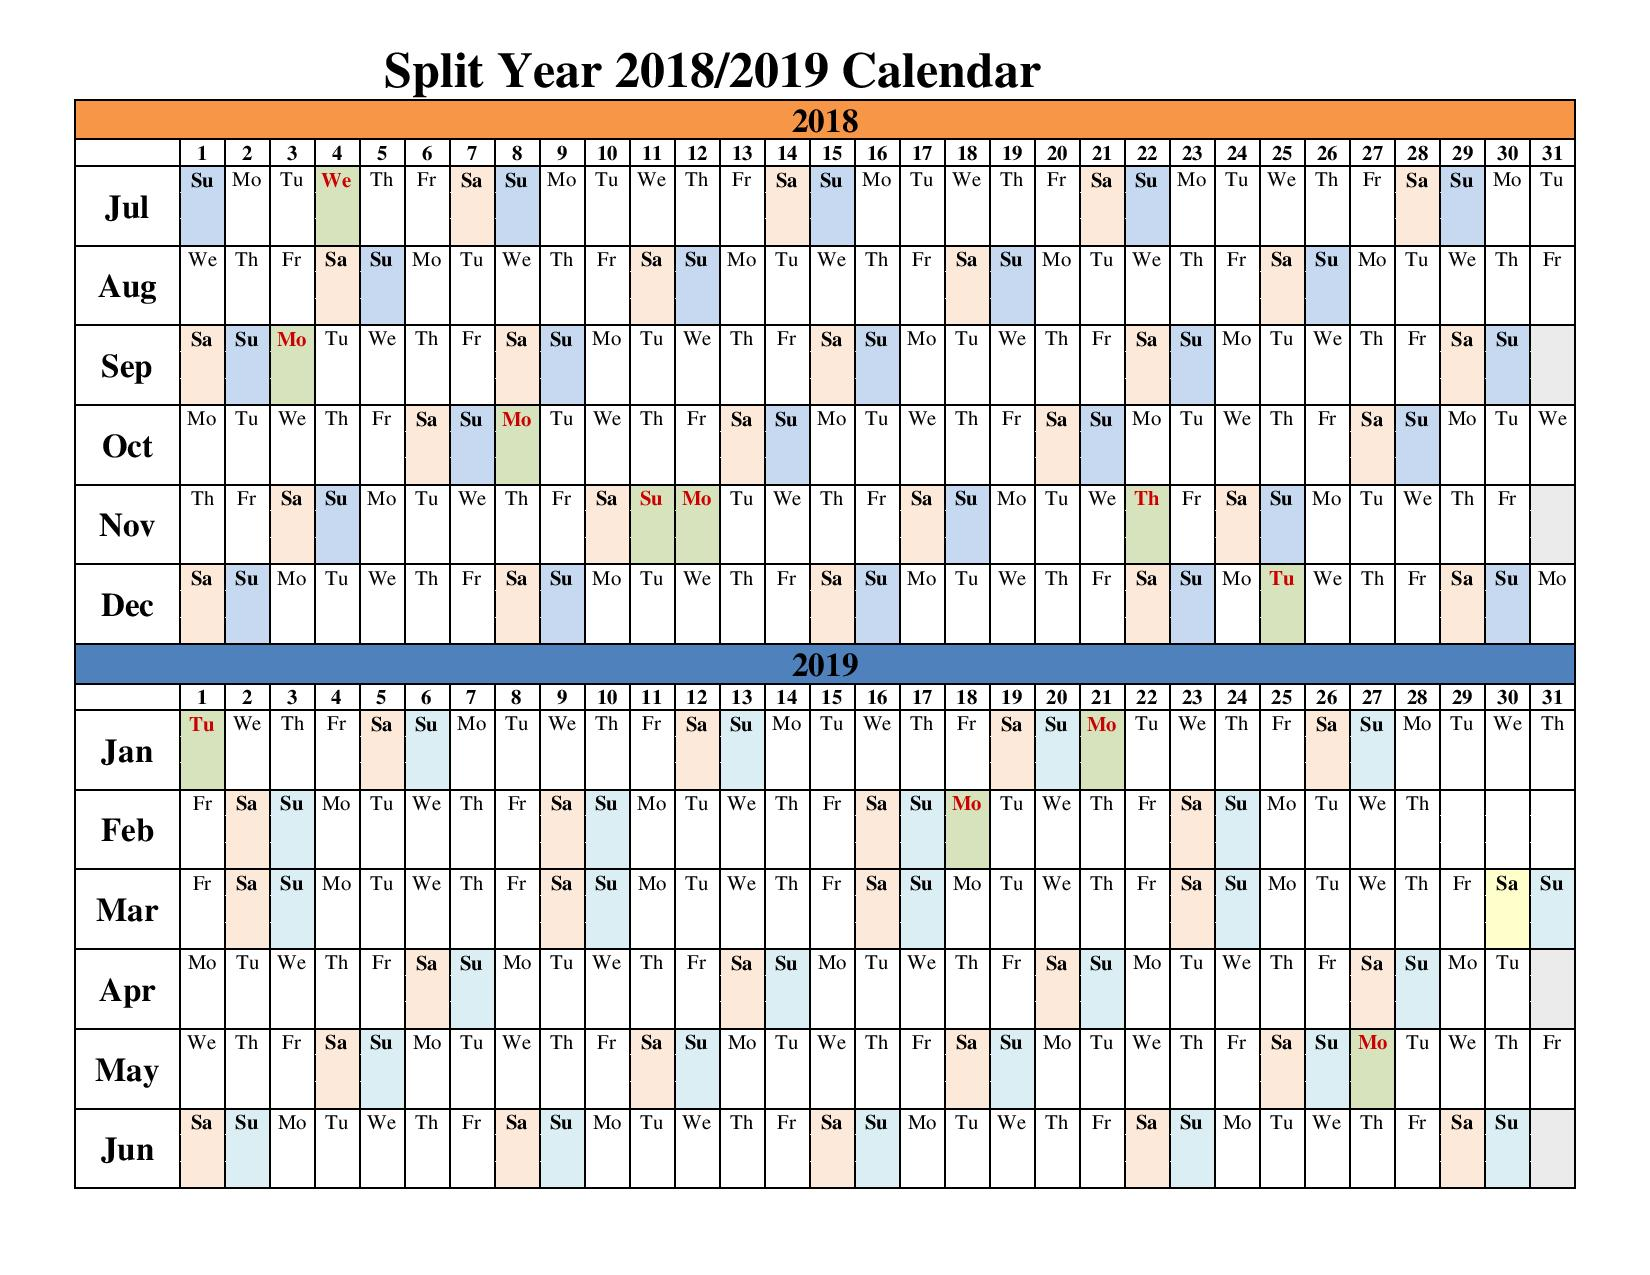 Year Calendar 2018 To 2019 With Split Calendars Blank Templates Office